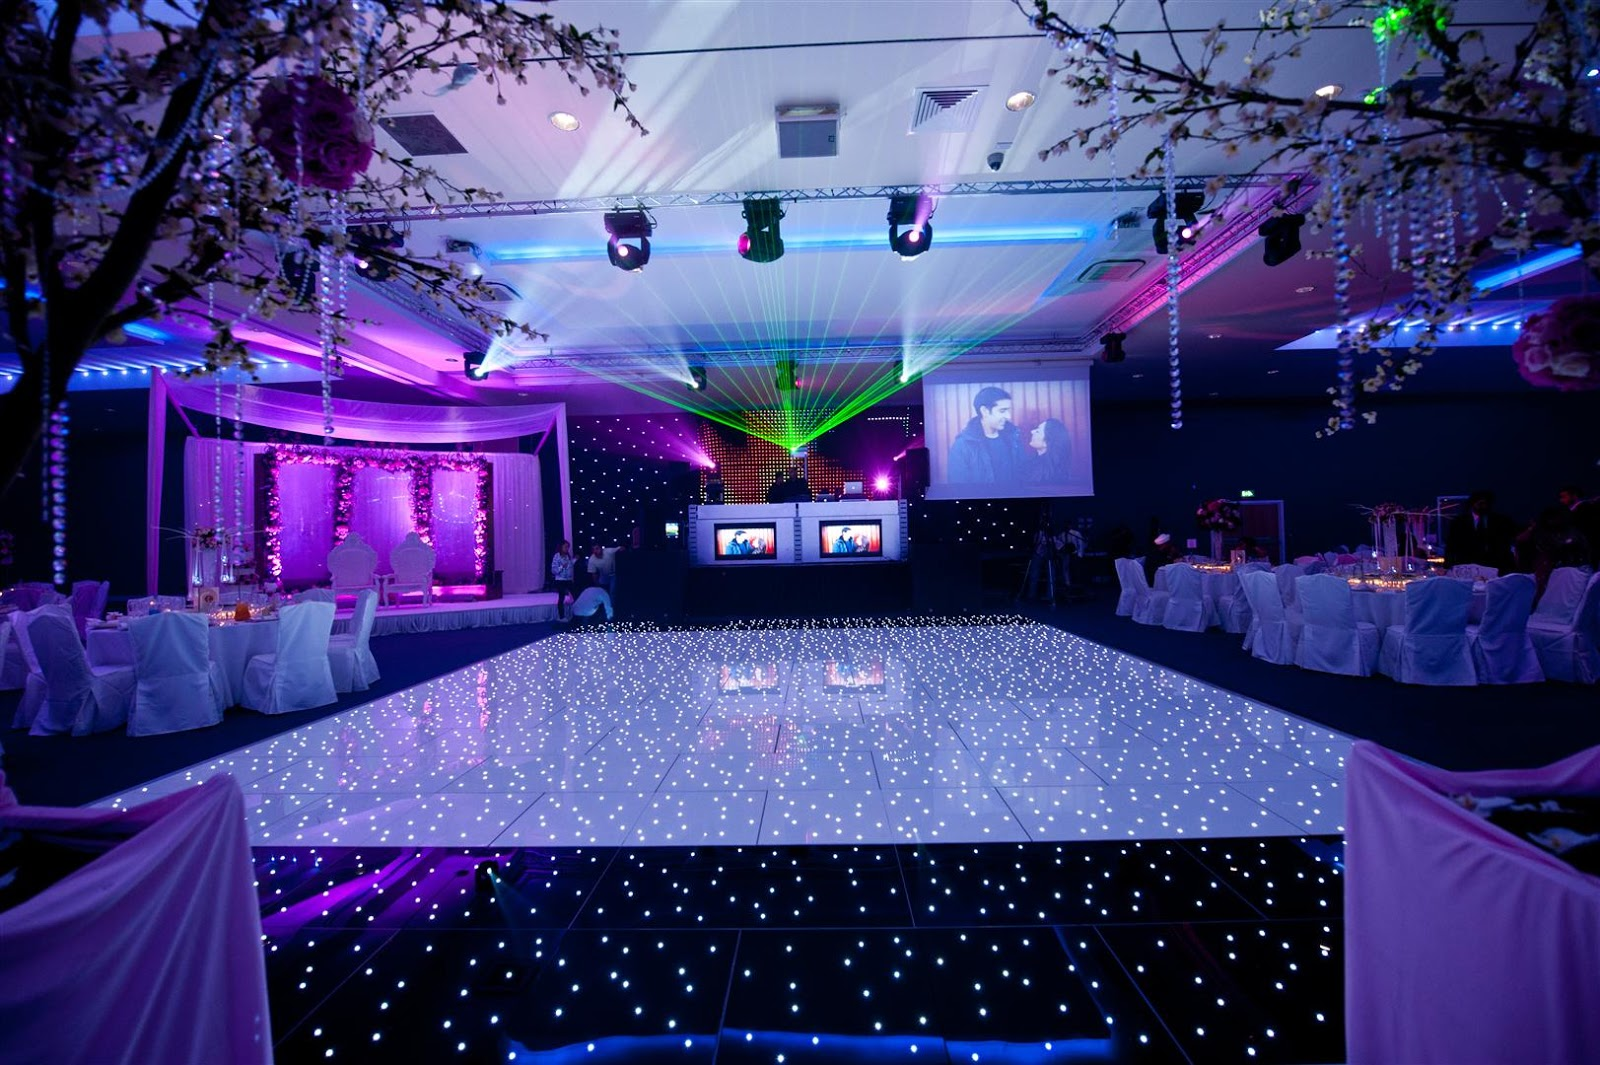 Maz S Blog Our Favourite In Asian Wedding Decorations In Birmingham In 2012